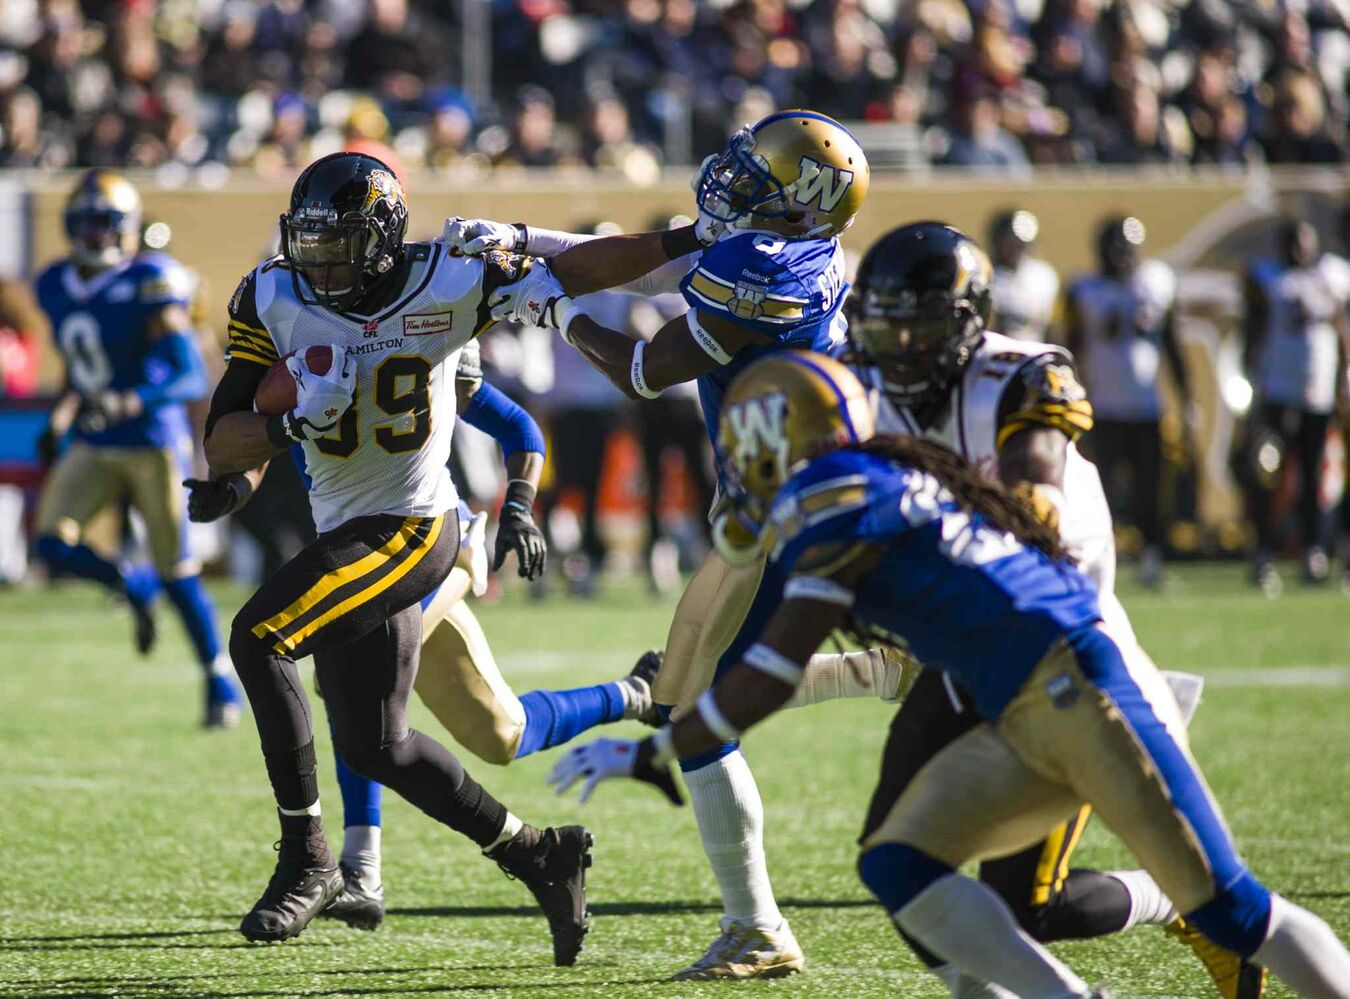 The Winnipeg Blue Bombers Brandon Stewart (8) attempts to take down Hamilton Tiger-Cats Onrea Jones (89) Saturday afternoon at Investors Group Field.